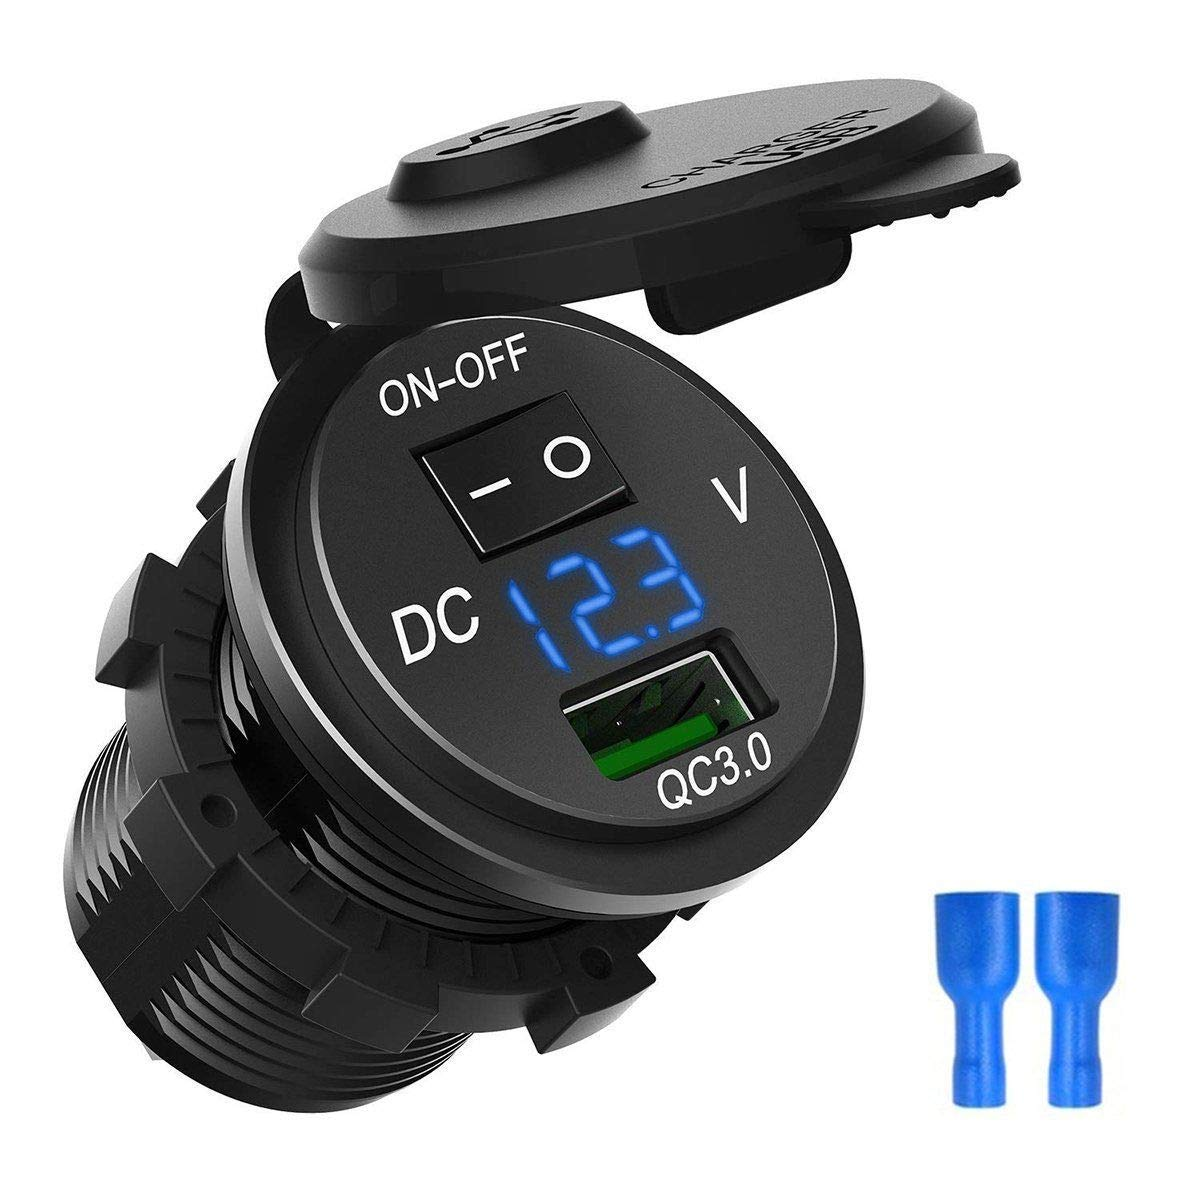 ZYTC Waterproof QC3.0 Car Charger USB Outlet Socket 12V//24V Green LED Digital Voltmeter with On//Off Switch for Car Boat Motorcycle Marine